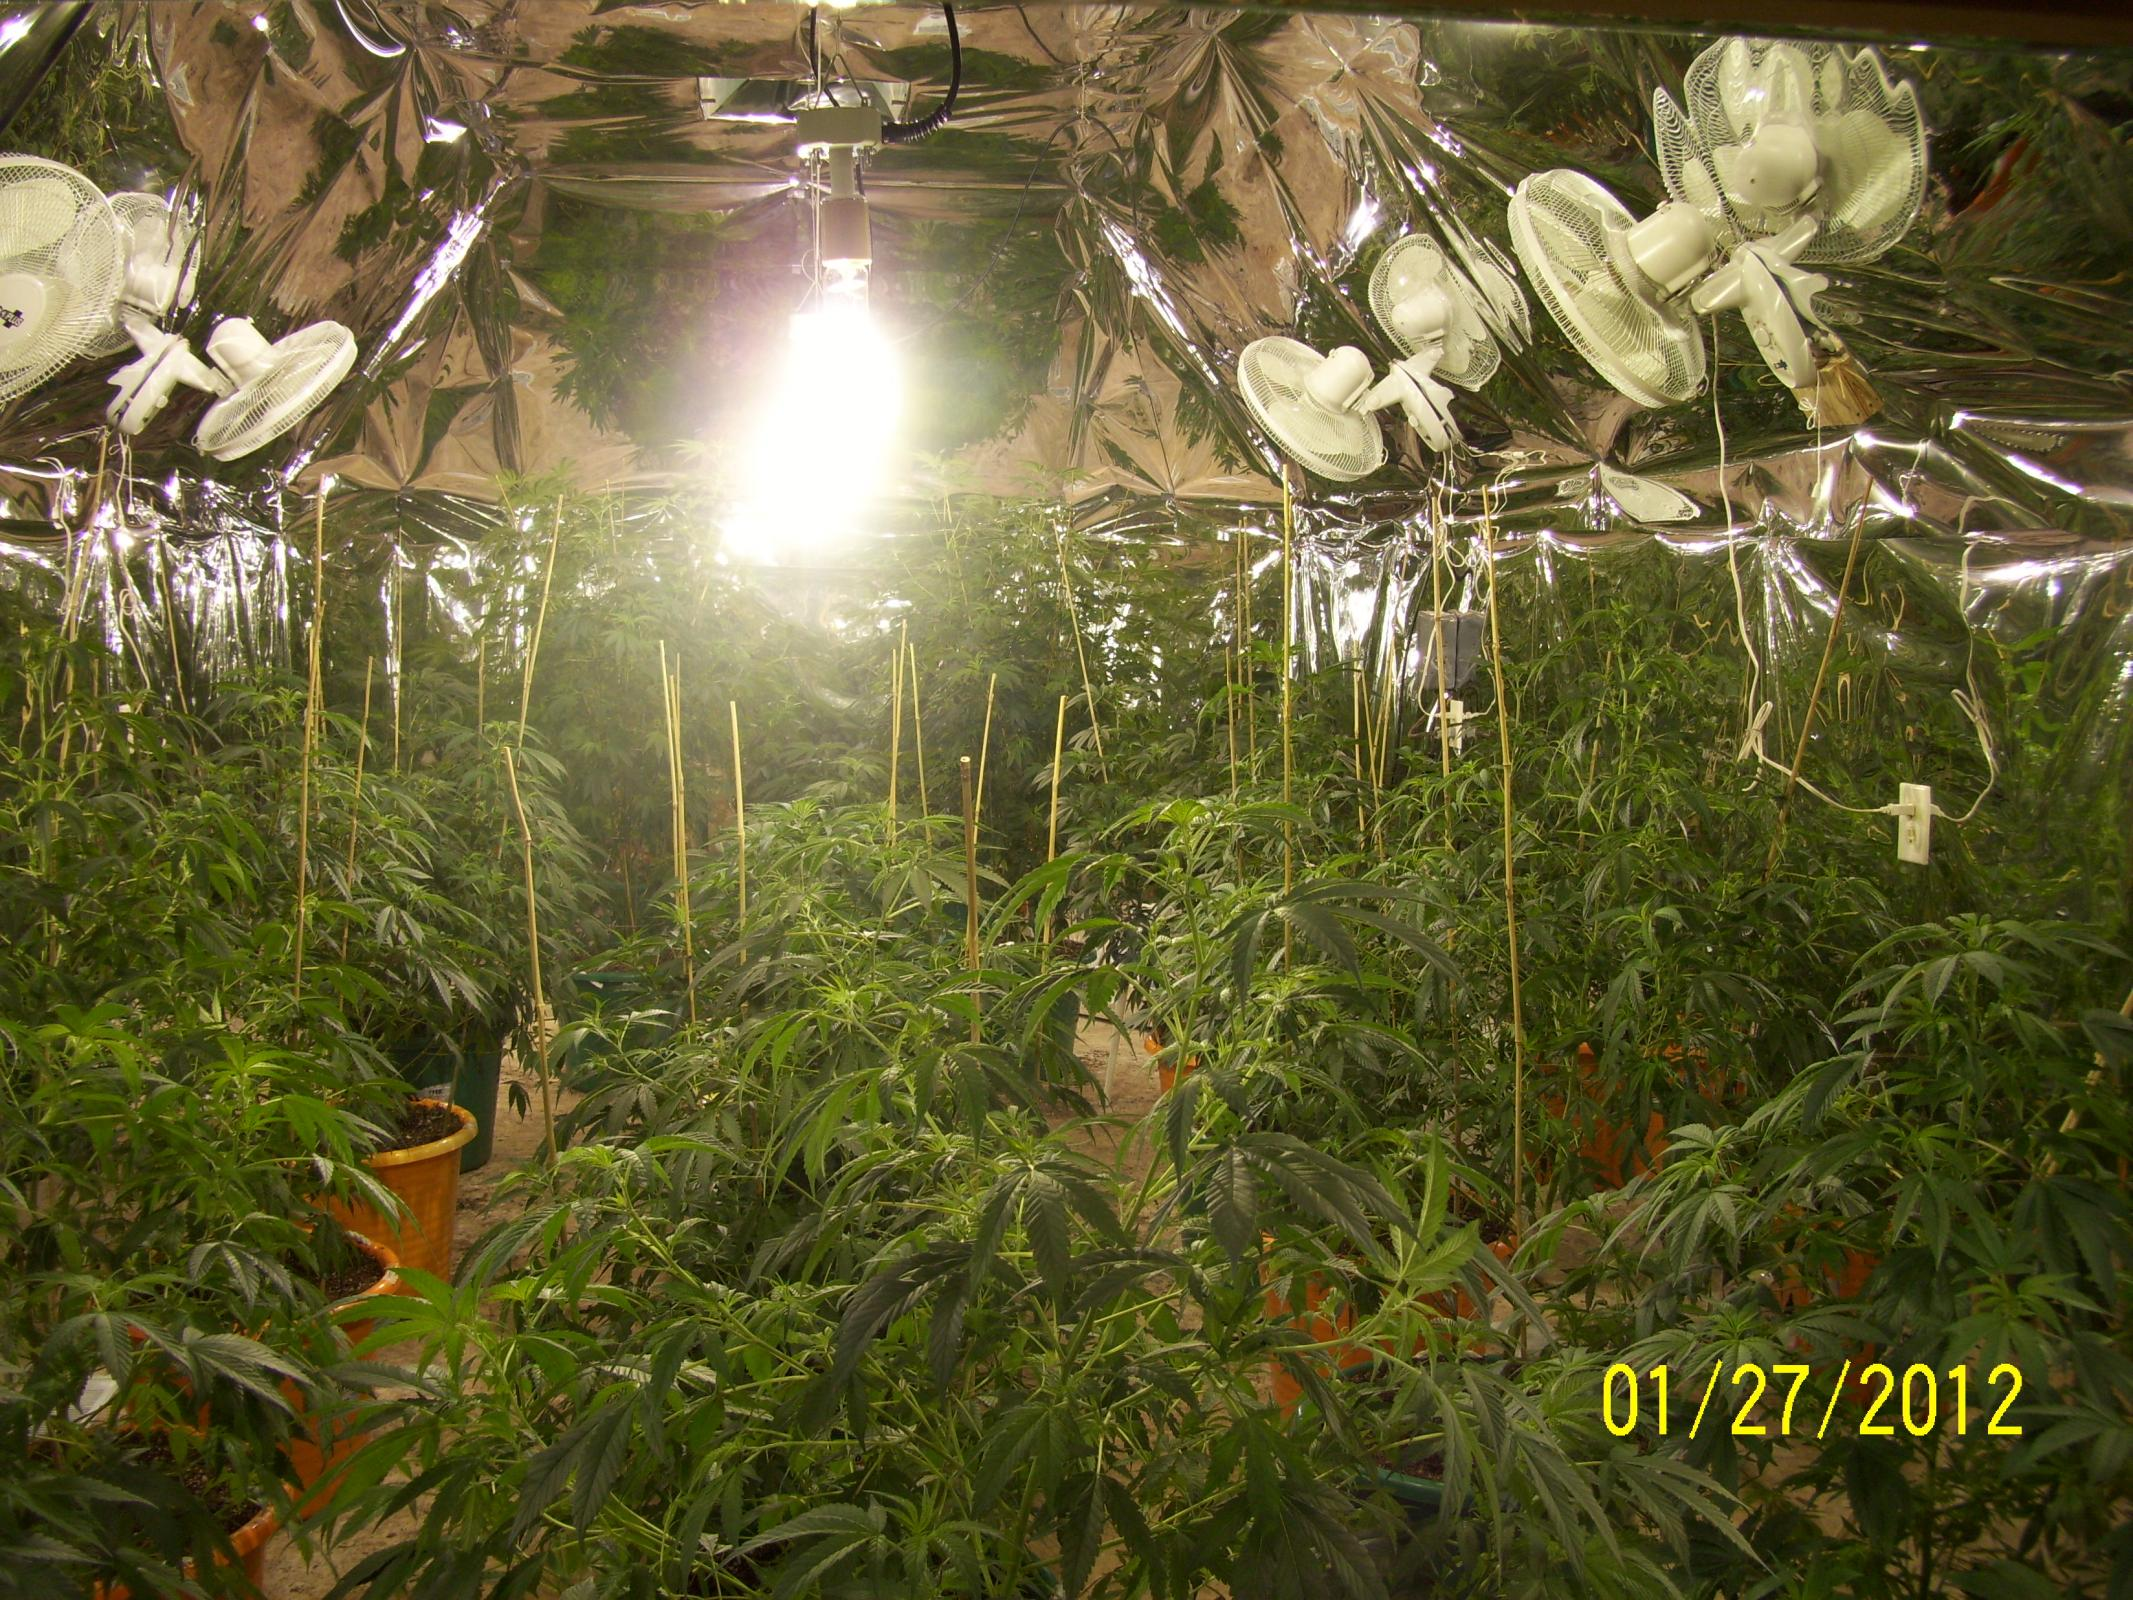 10x10 grow room help | Grasscity Forums - The #1 Marijuana